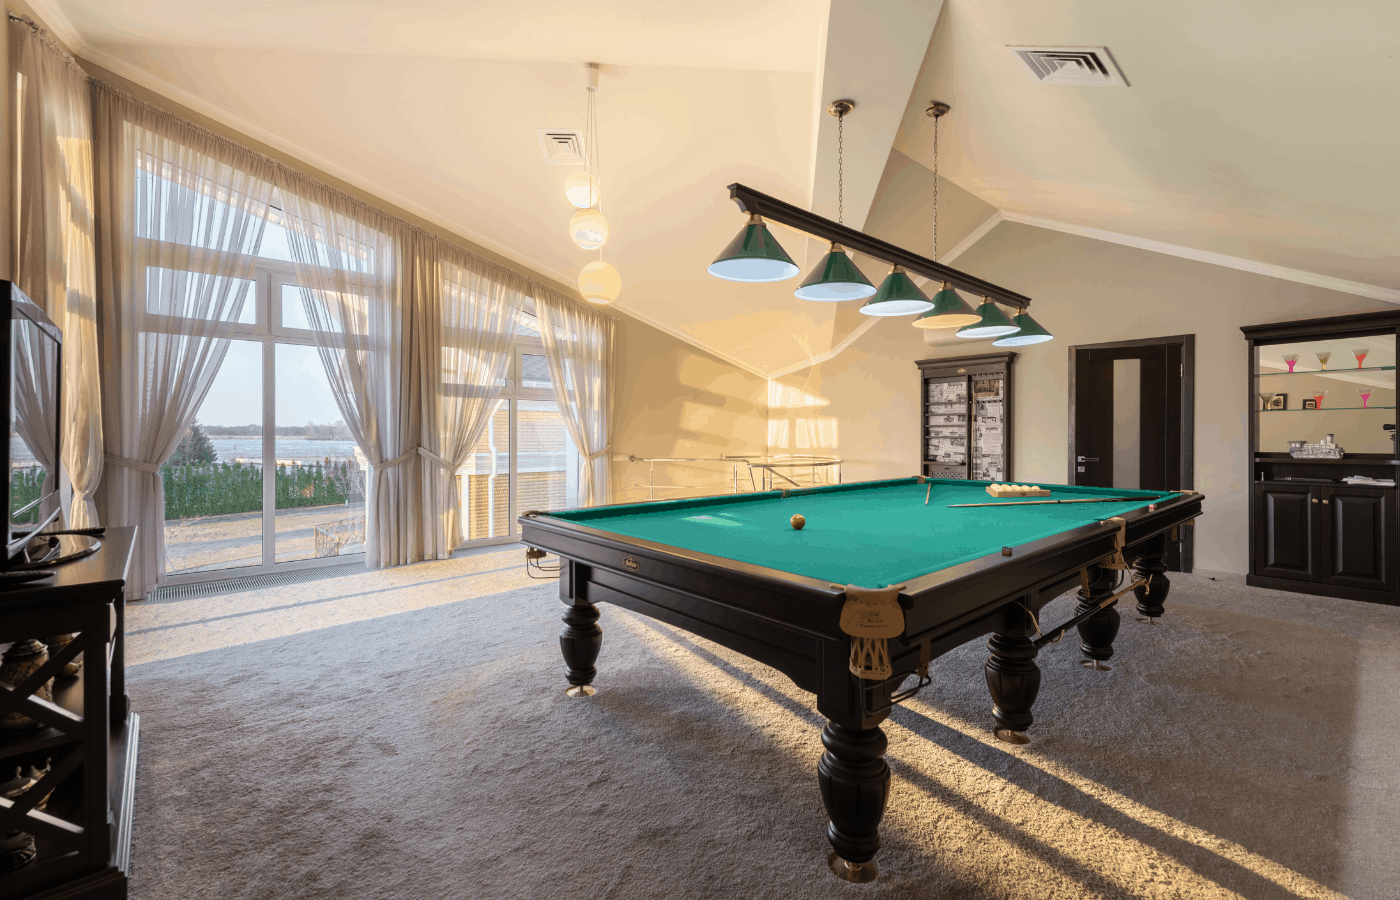 can you move a pool table with furniture sliders